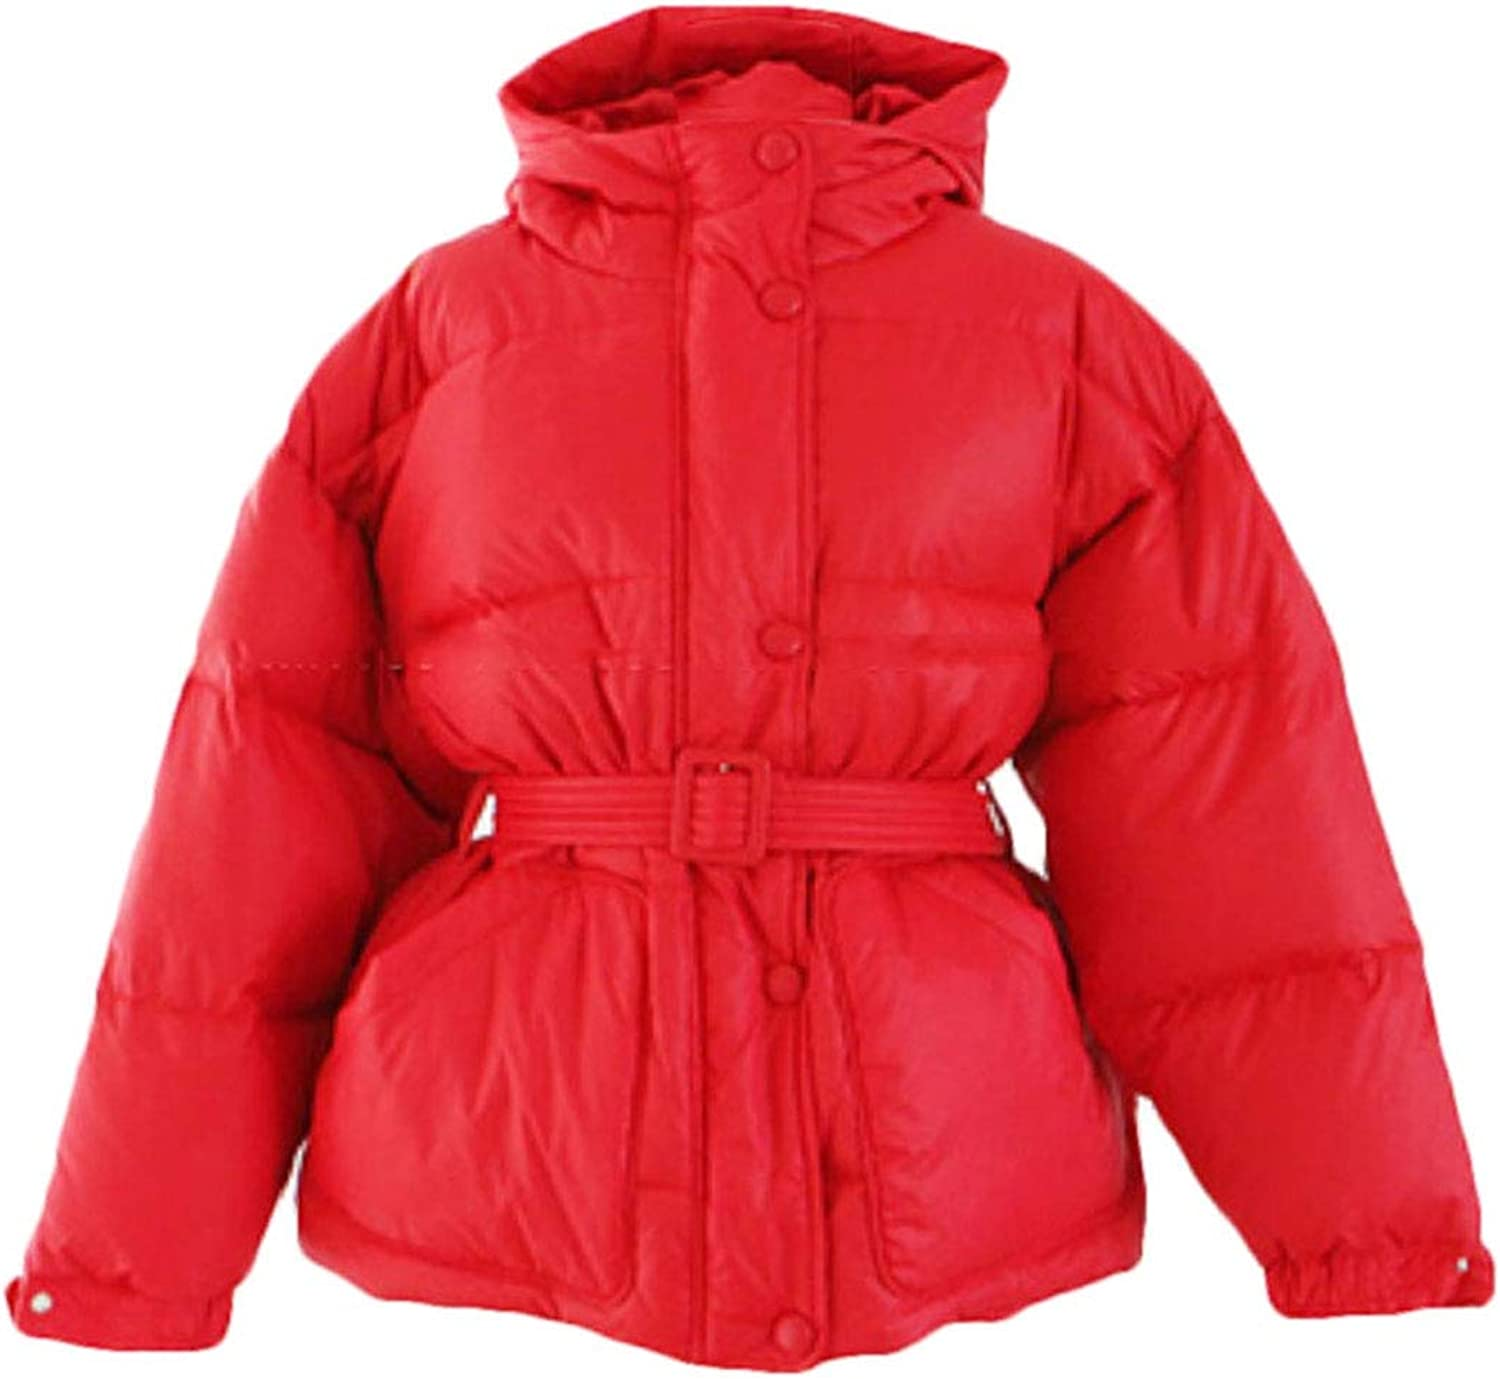 Keaac Women's Warm Parka Quilted Hood Winter Down Coat Down Coat